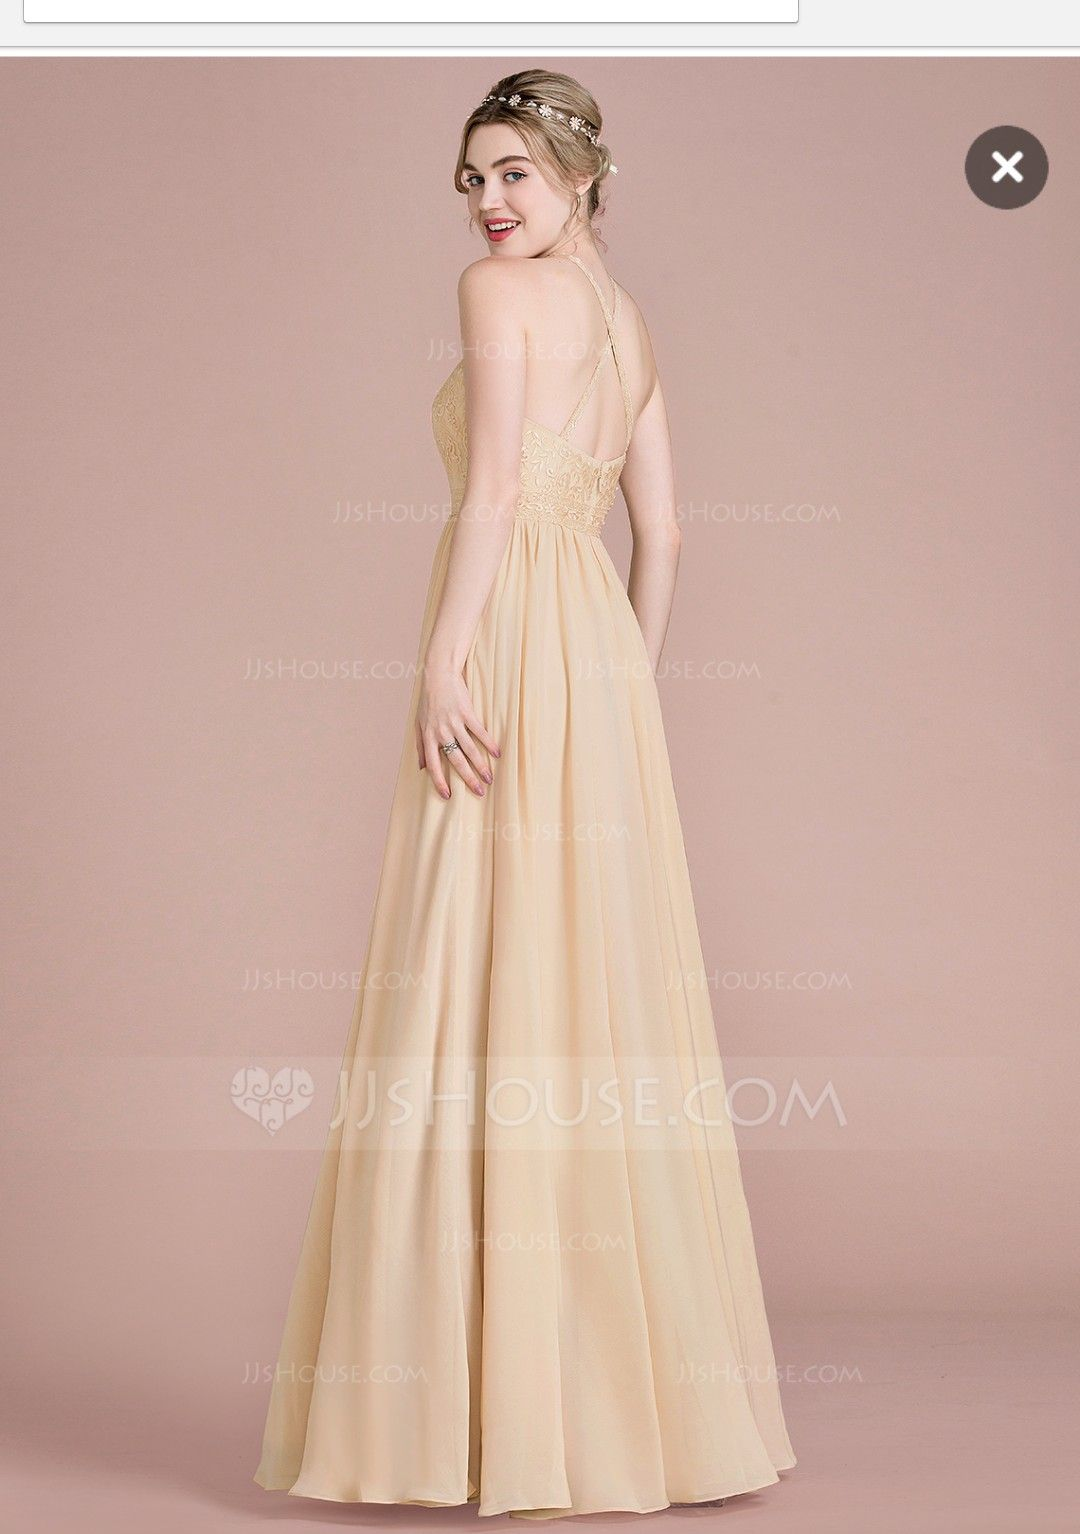 Fancy Maxi Dress For Wedding Overview